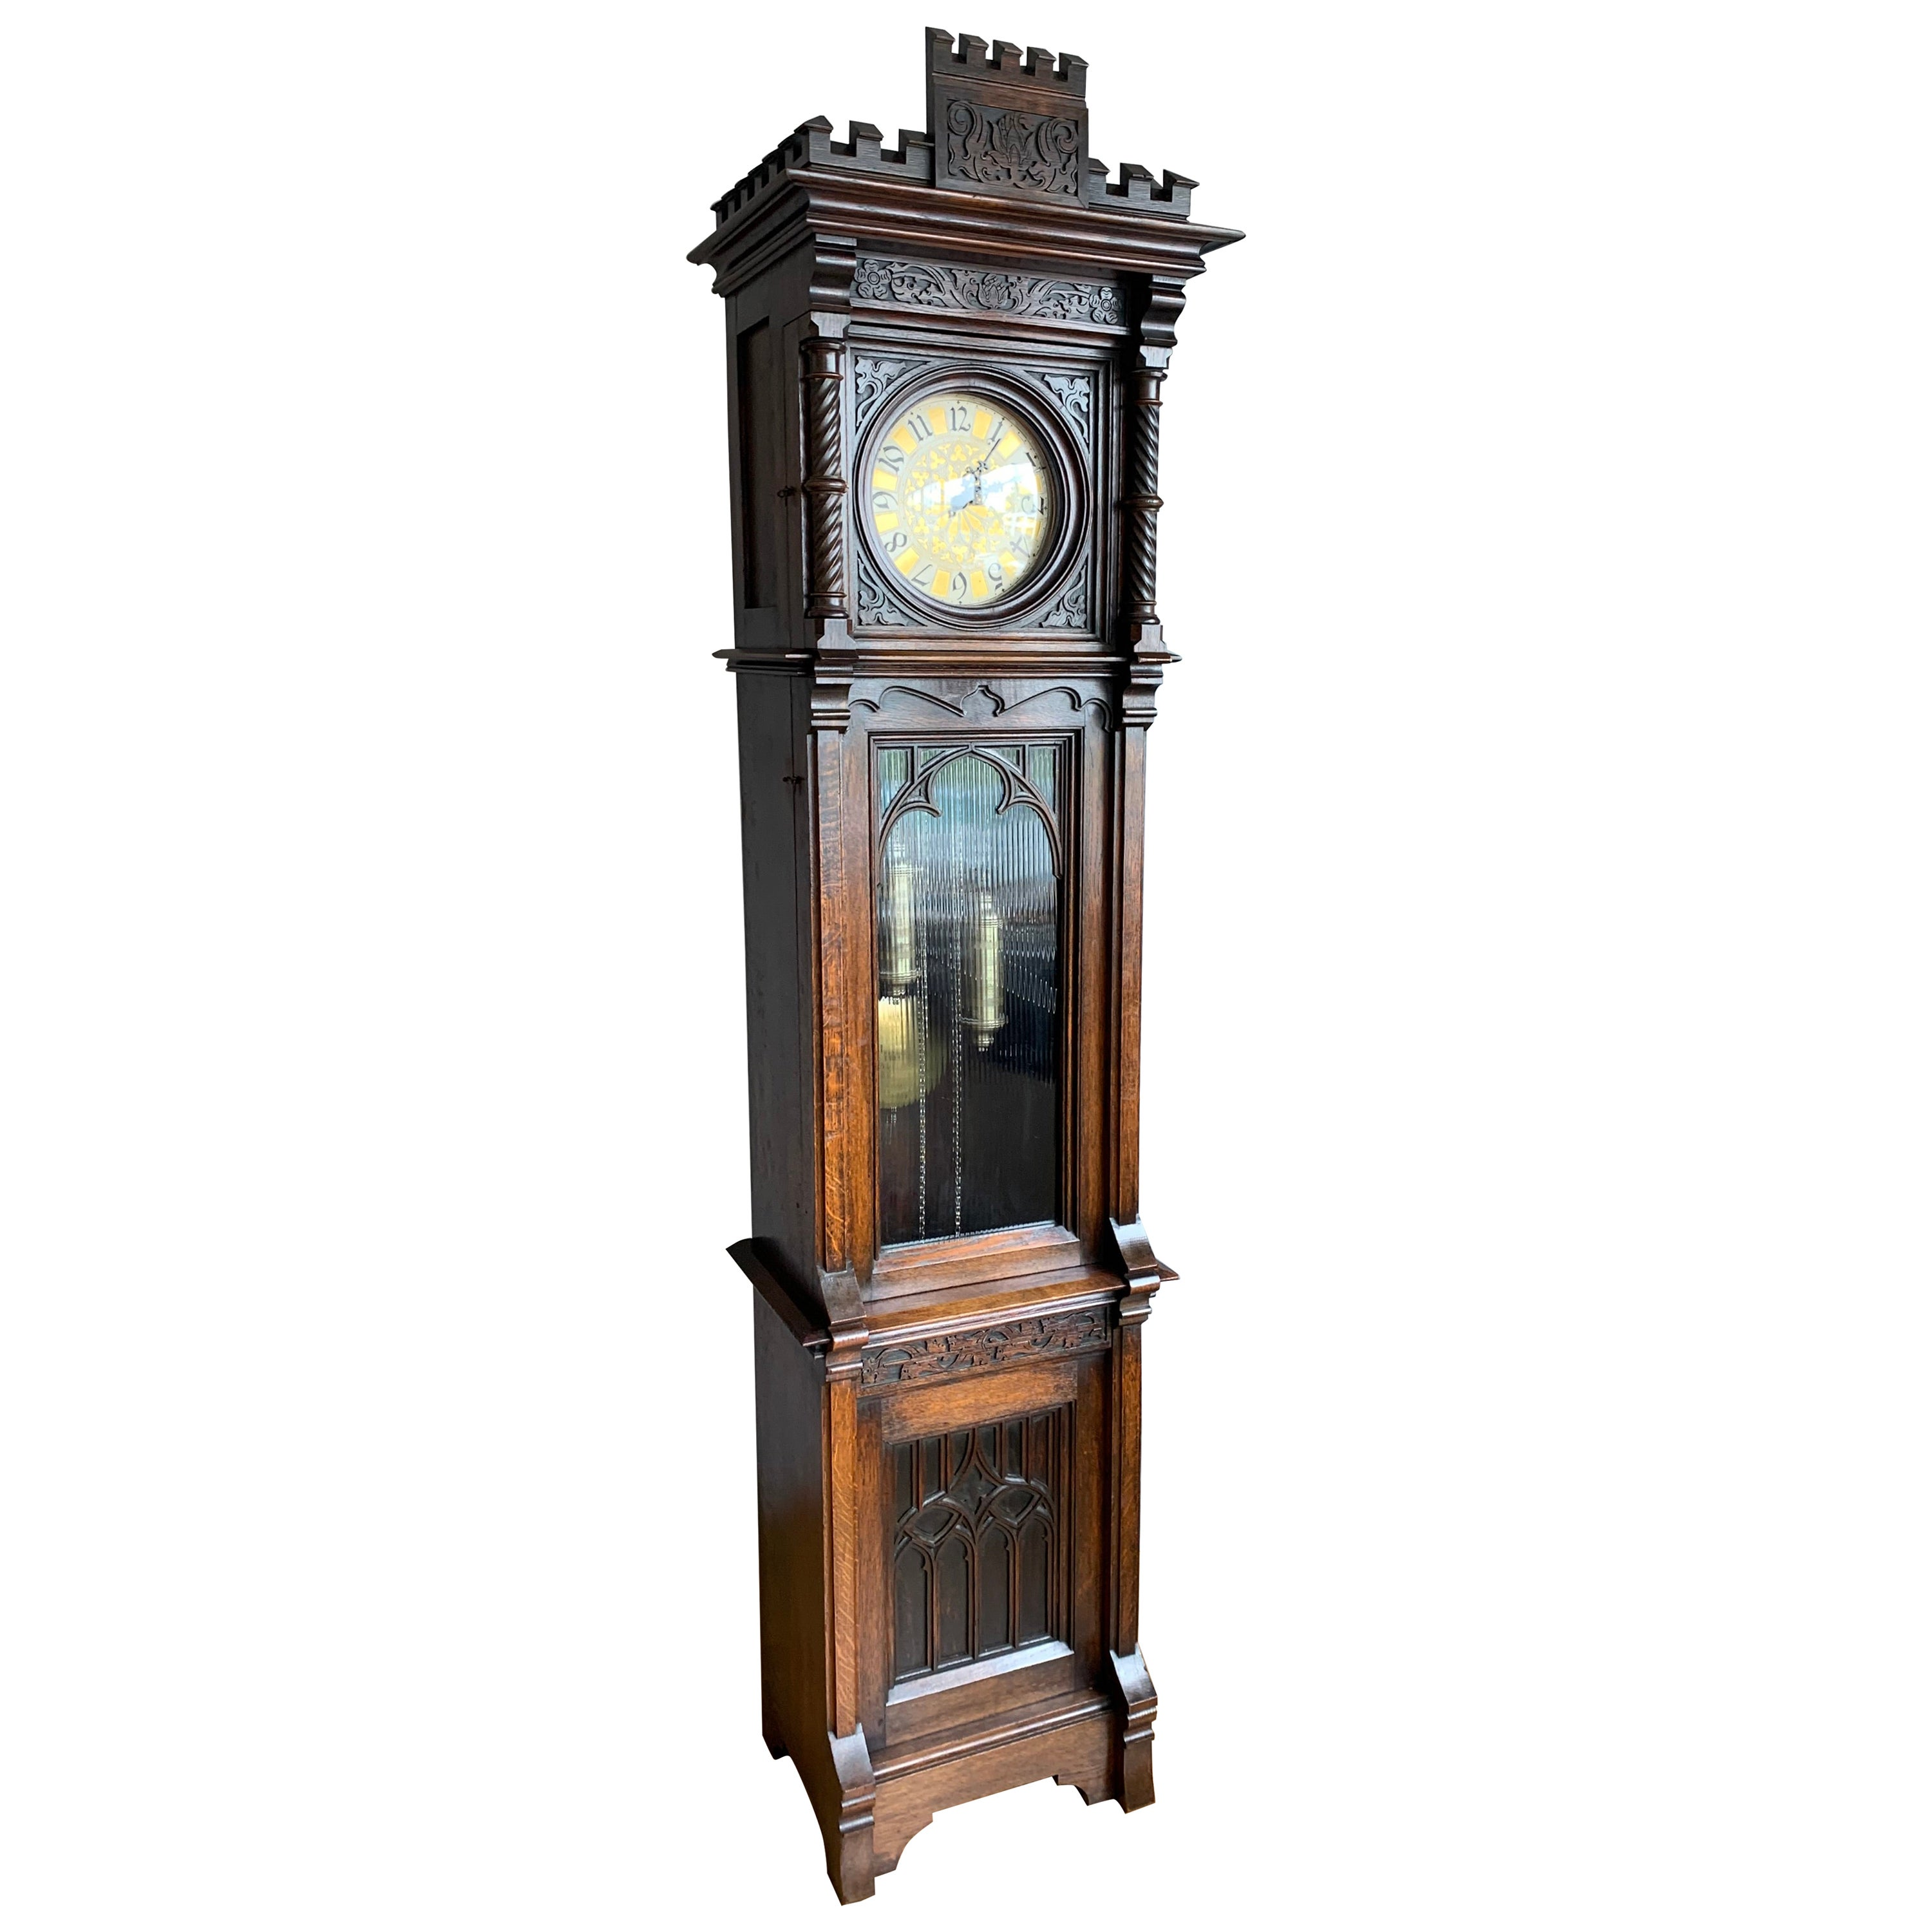 Antique and Unique, Hand Carved Gothic Revival Grandfather or Longcase Clock